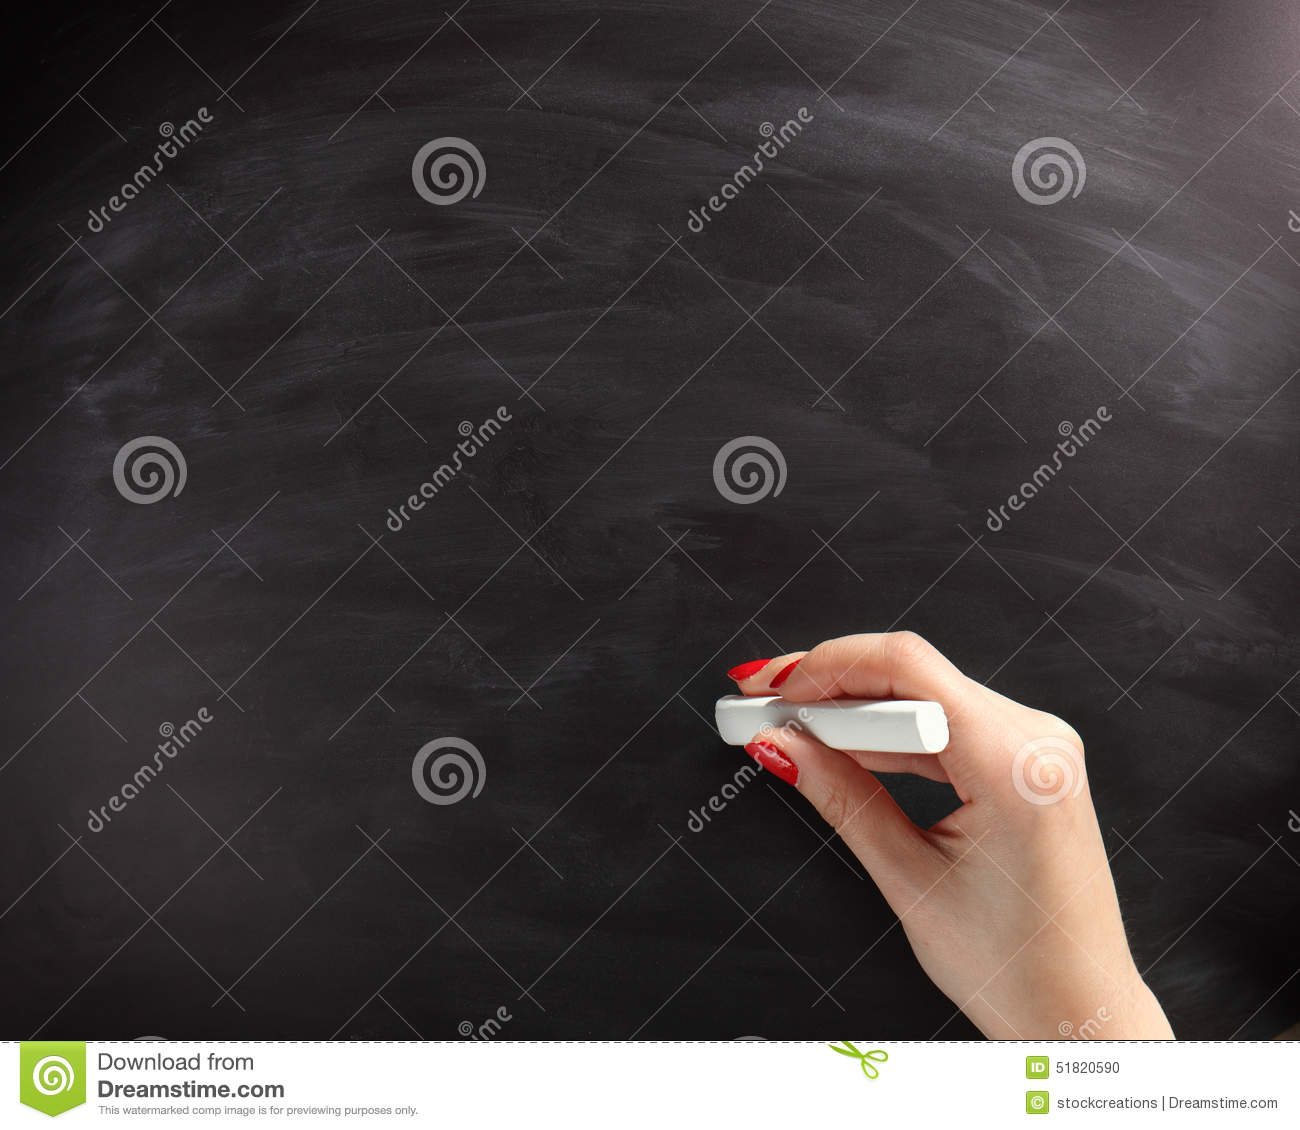 Woman Hand About To Write On Black Chalkboard Stock Photo - Image of ...